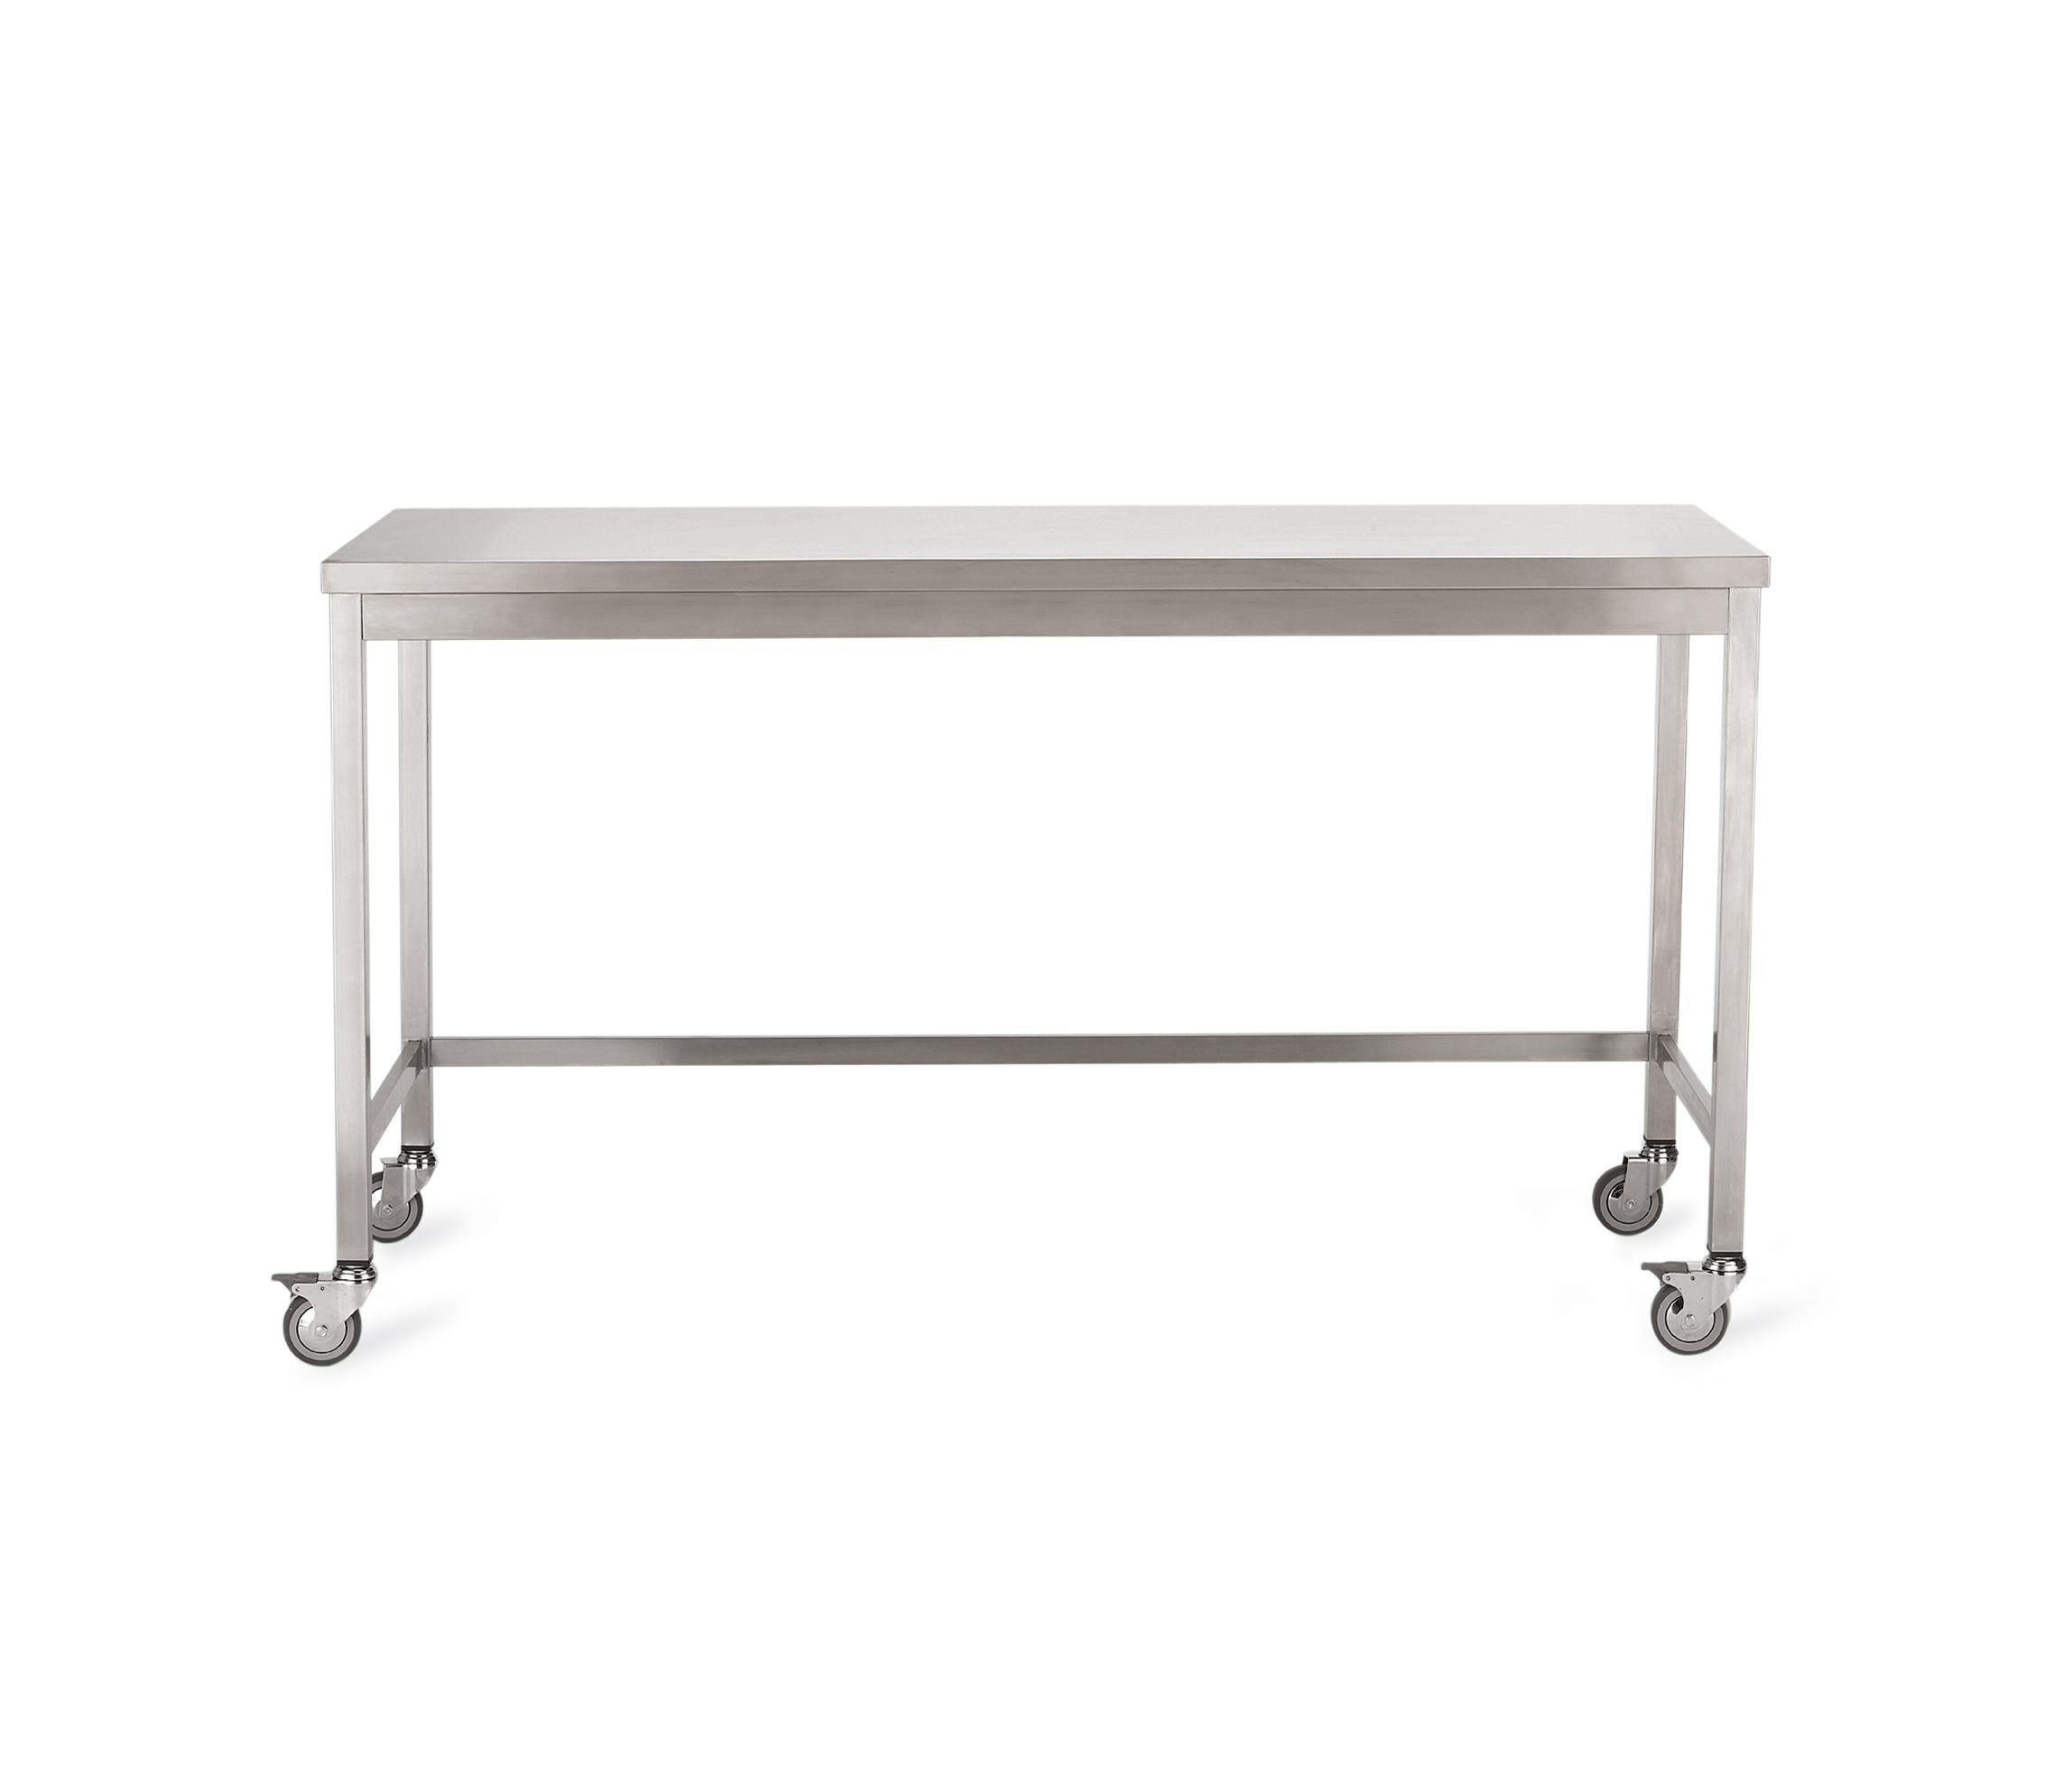 Good Quovis Standing Height Table By Design Within Reach | Kitchen Trolleys